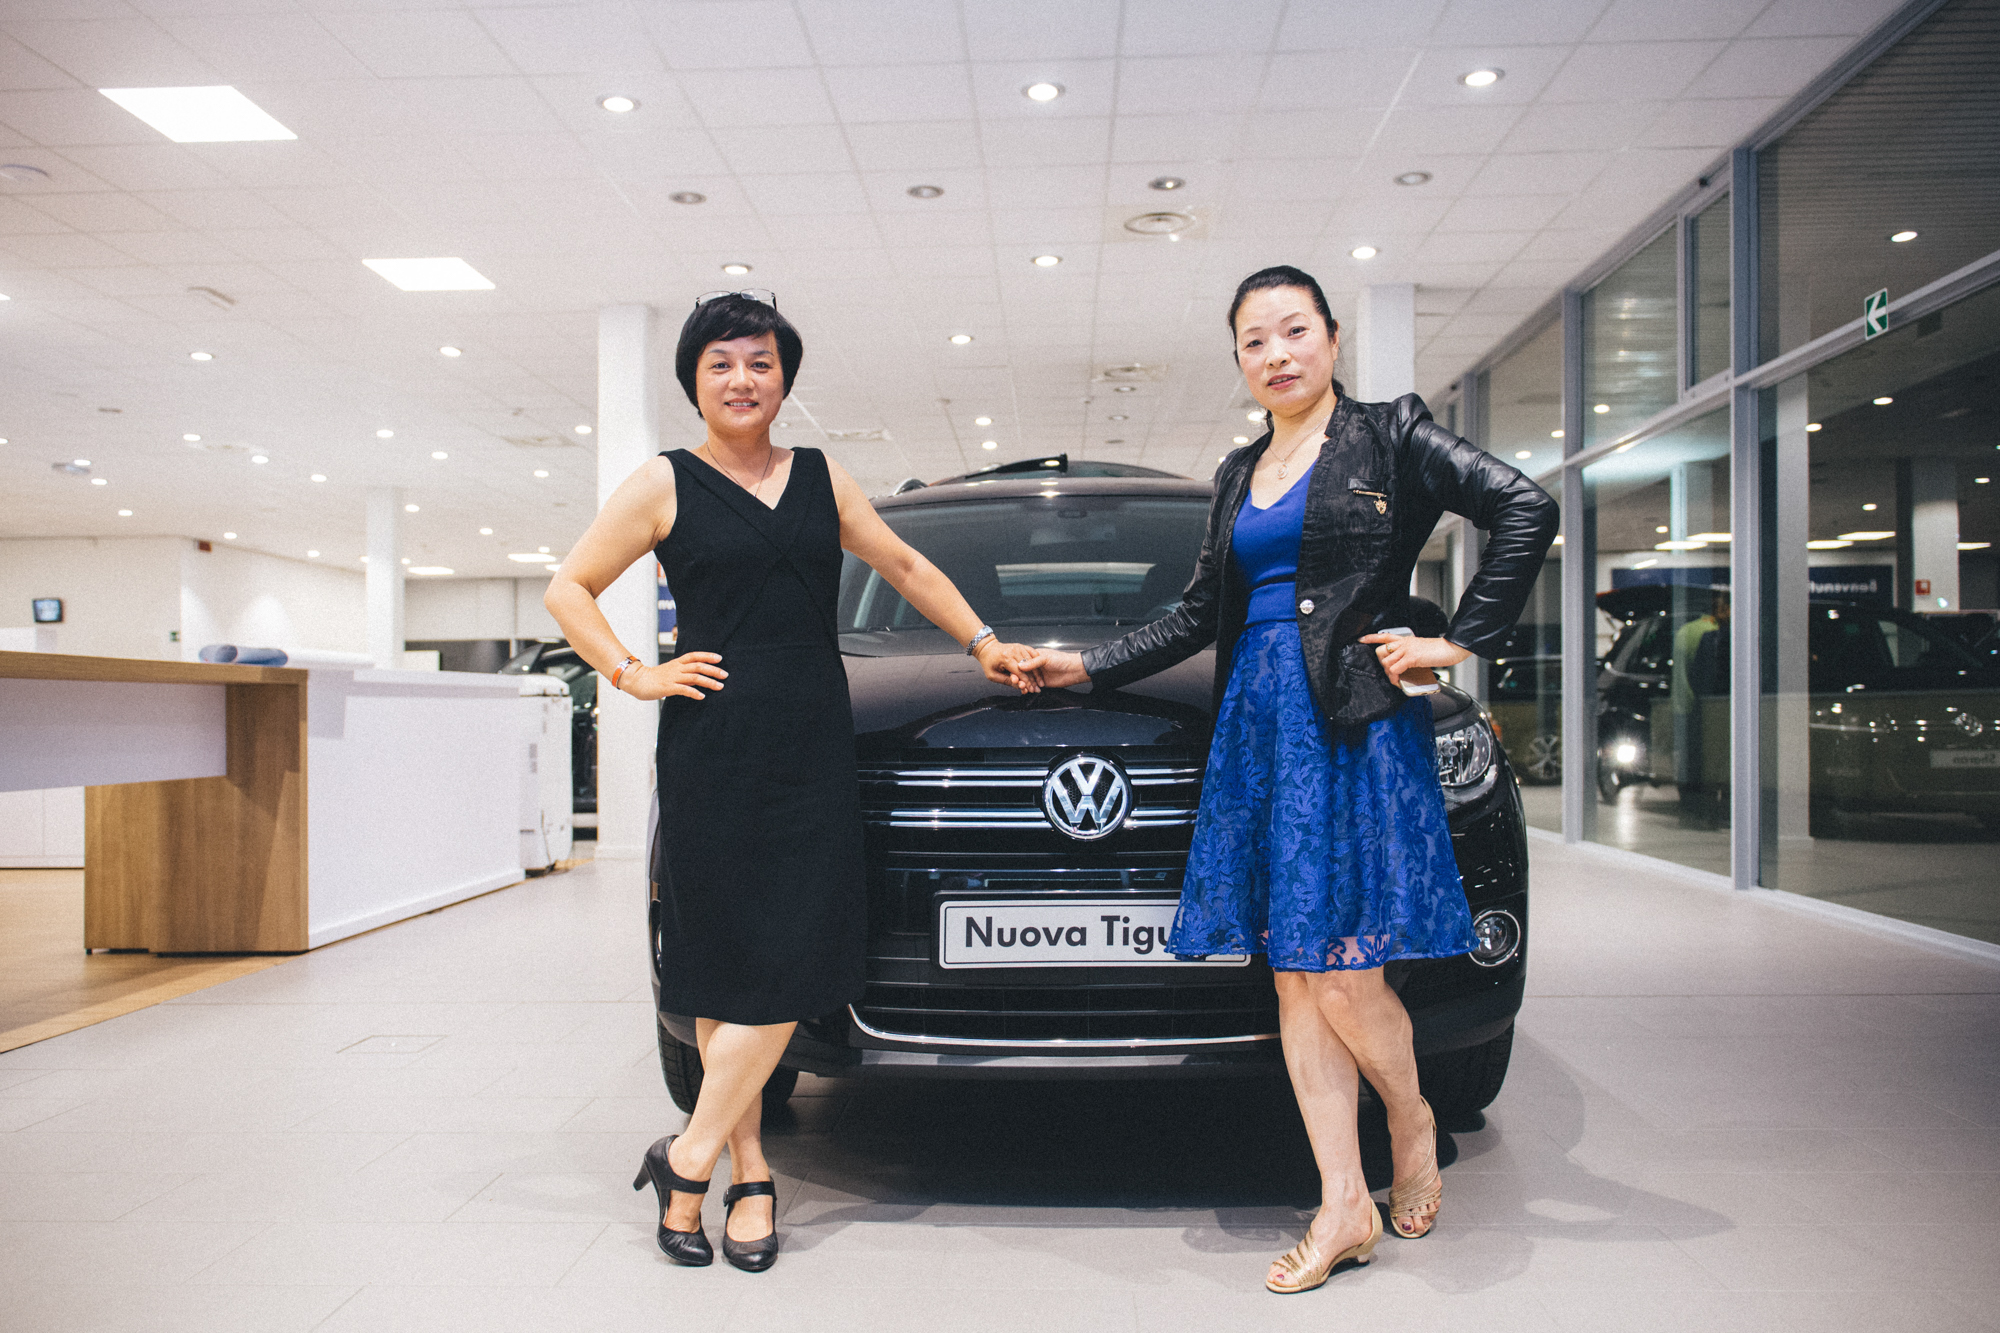 Prato, May 2015. Two women pose for a photo during a promotional event at a local car dealer.